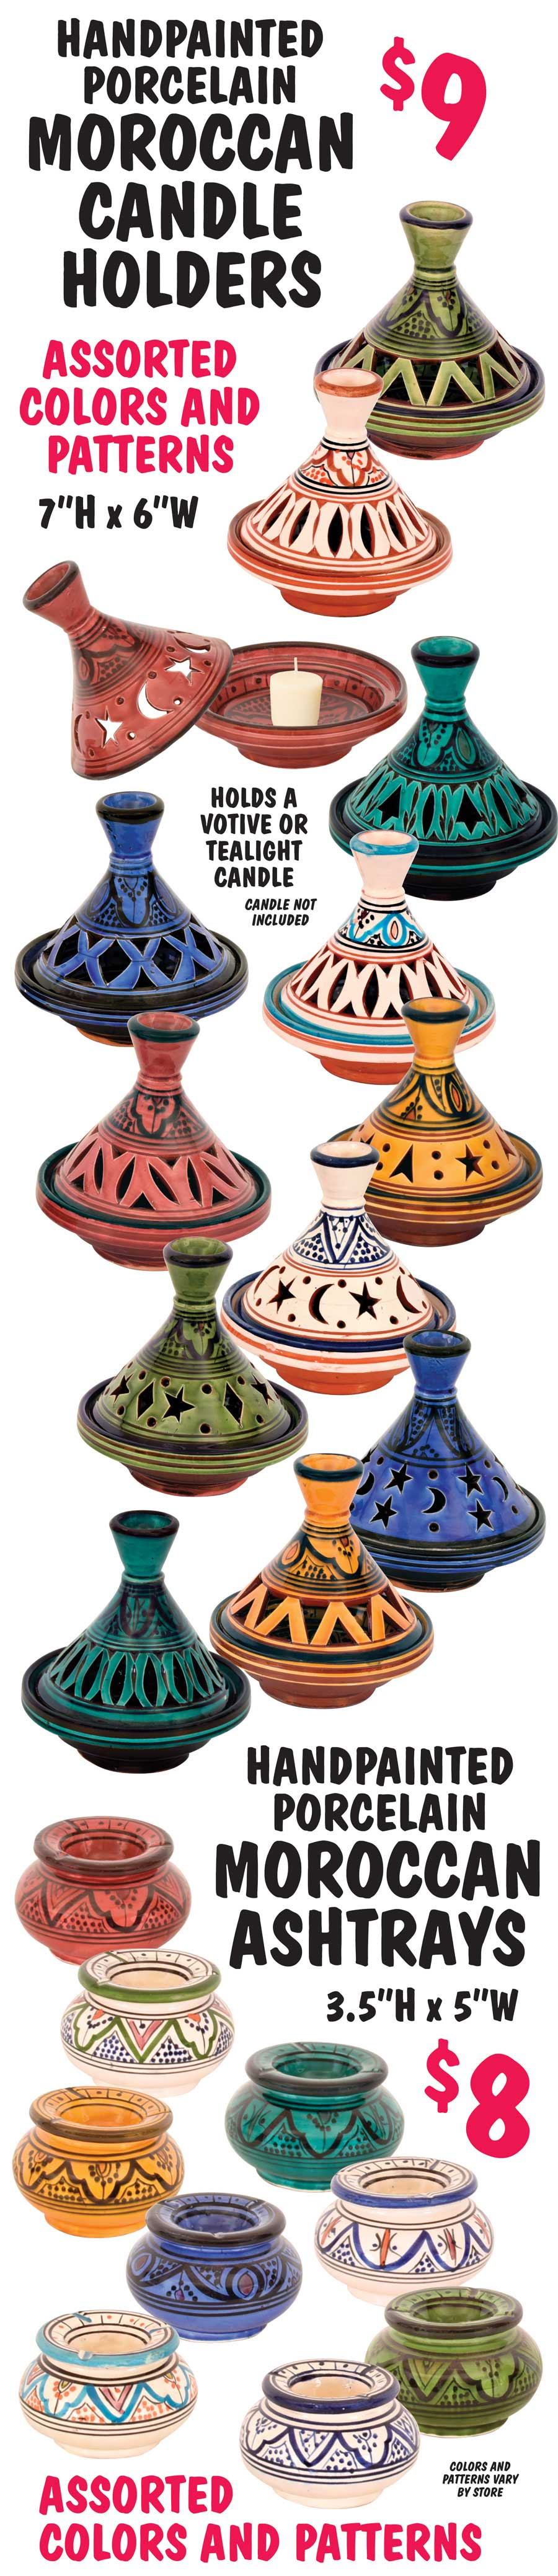 Hand-Painted Porcelain Moroccan Candle Holders and Ashtrays - Assorted Colors and Patterns - Candle Holders $9, Ashtrays $8